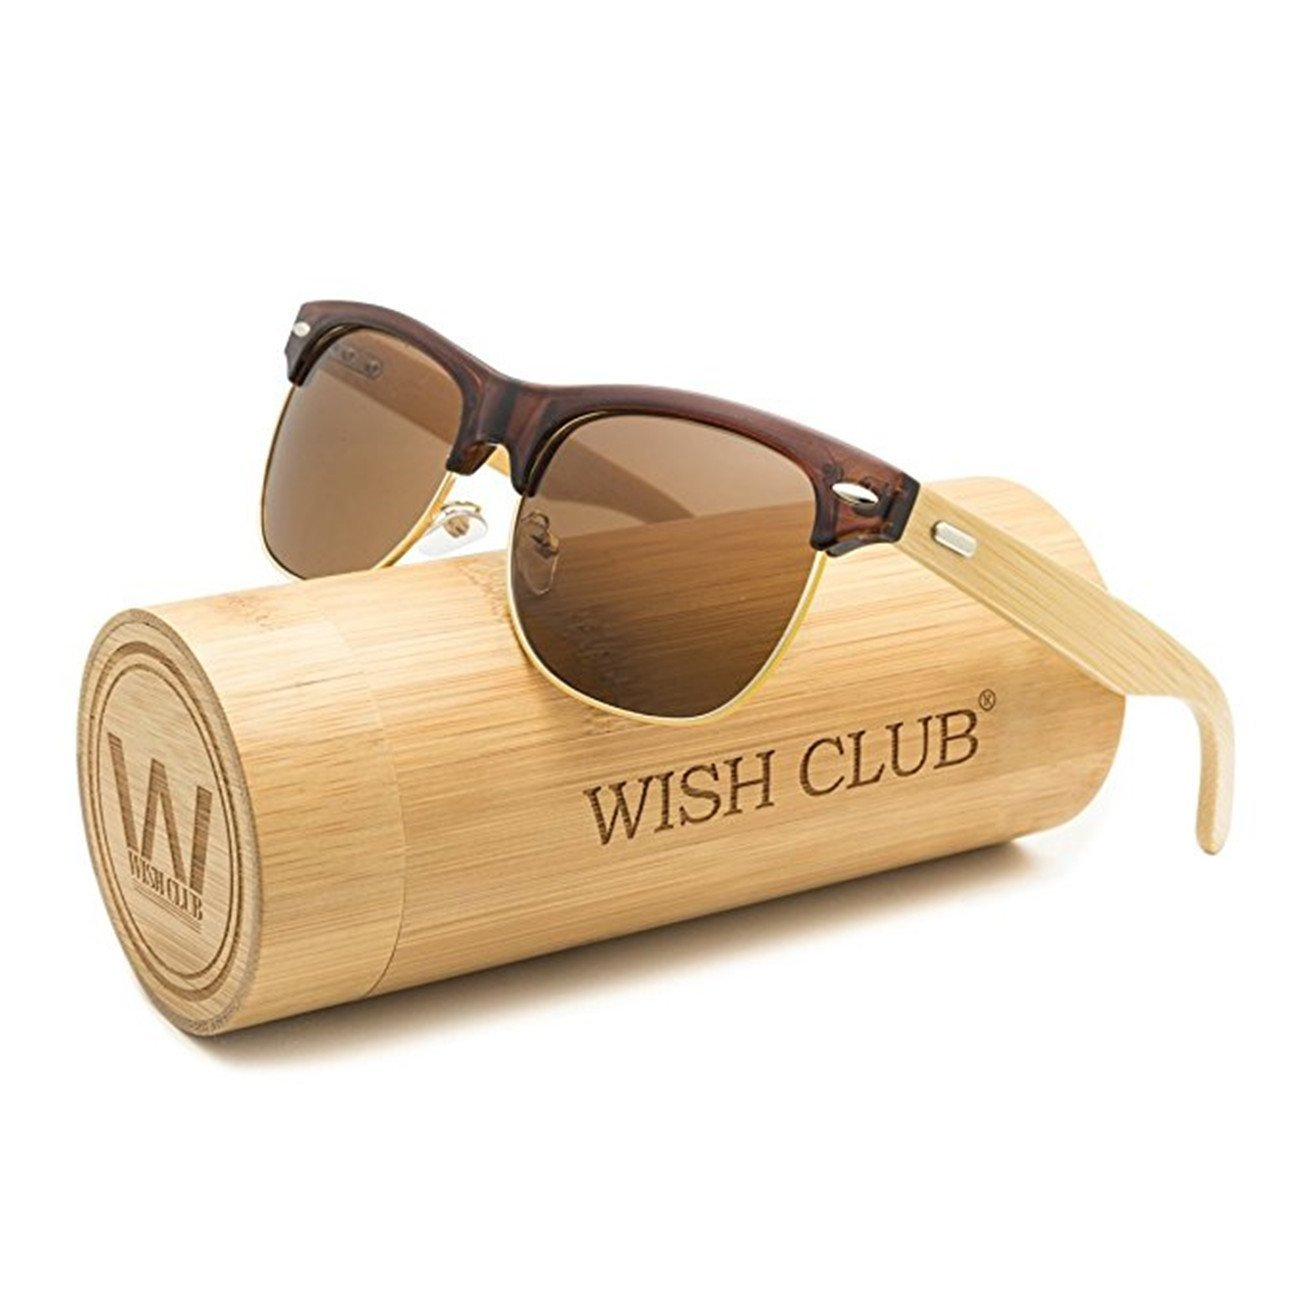 WISH CLUB Wood Clubmaster Sunglasses for Men with UV 400 Square Handmade with Bamboo Box (Brown)